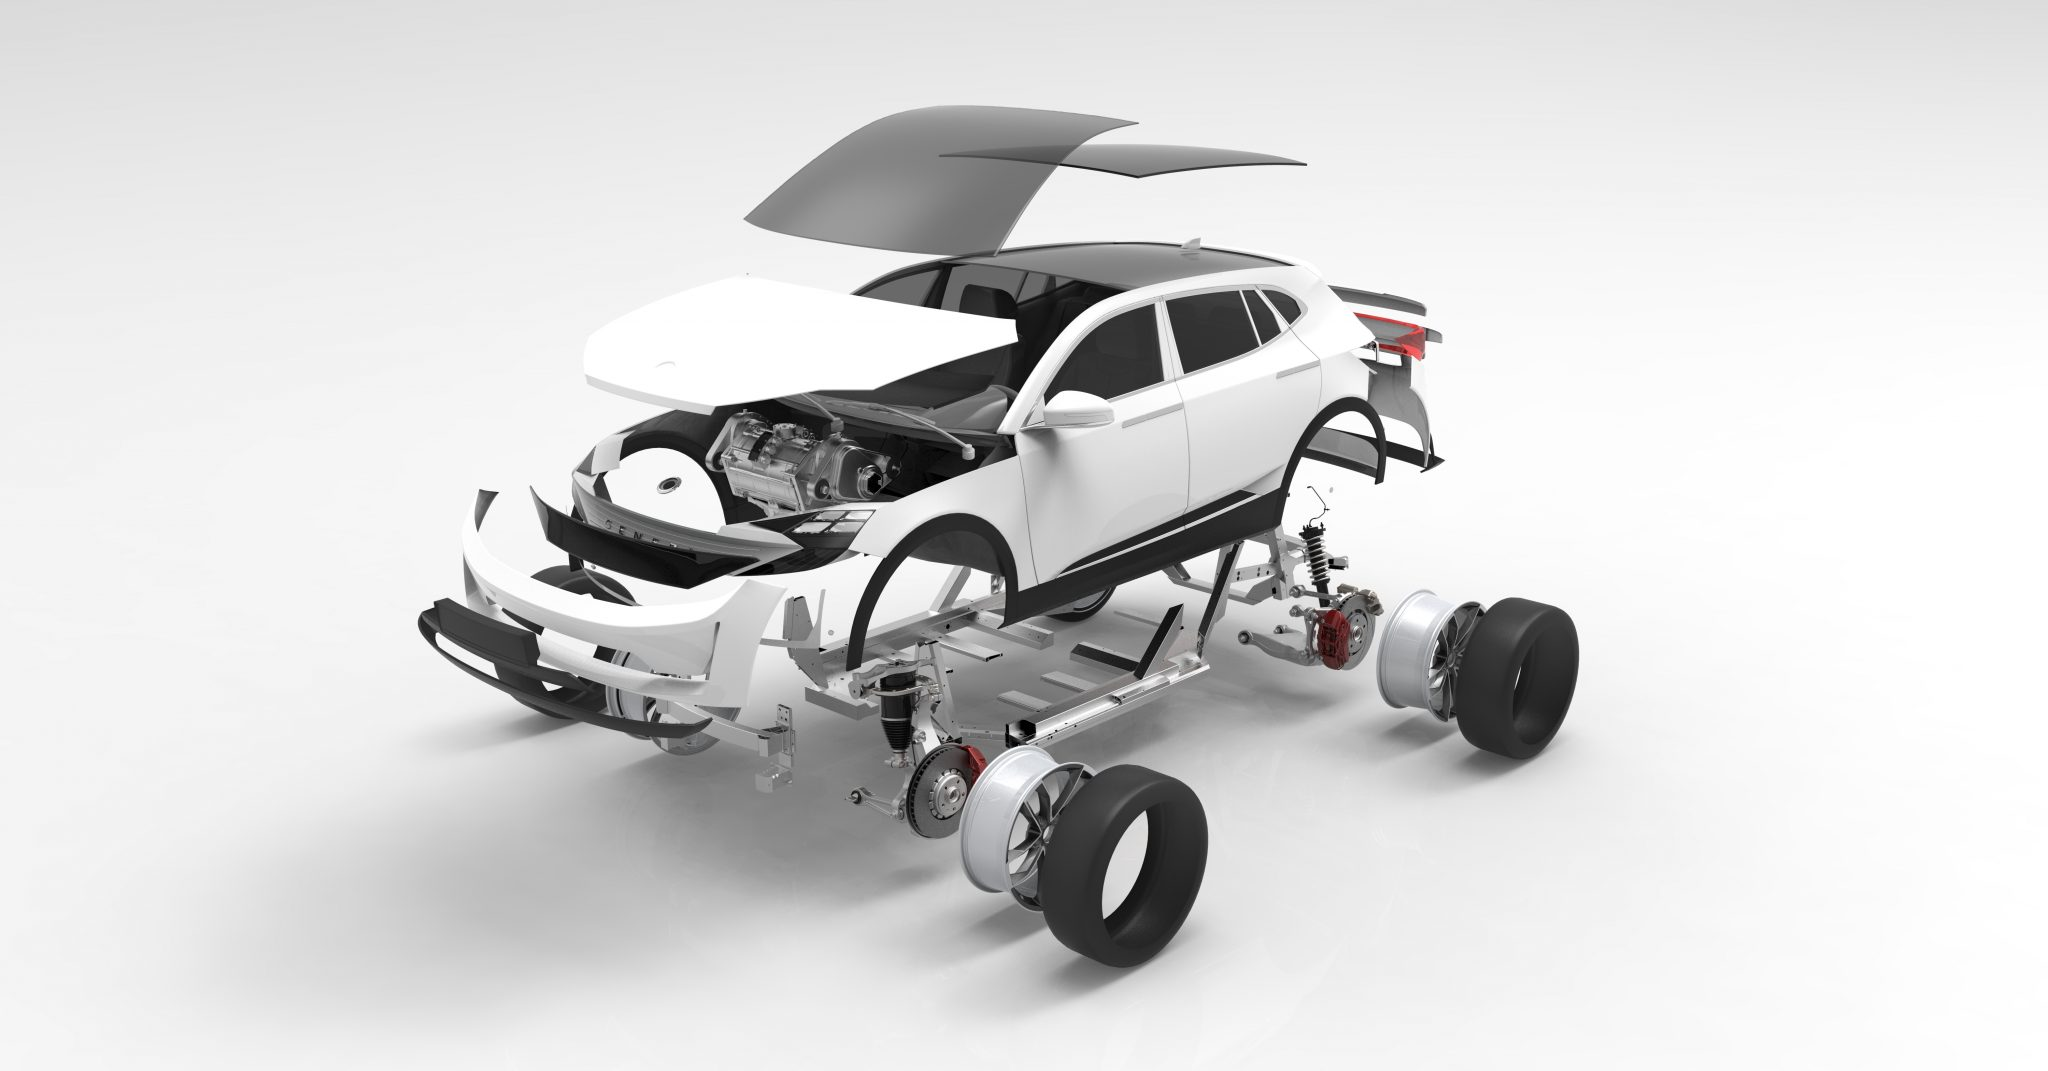 For Electric And Hybrid Vehicles Saint Jean Industries Supports The Development Of Electric And